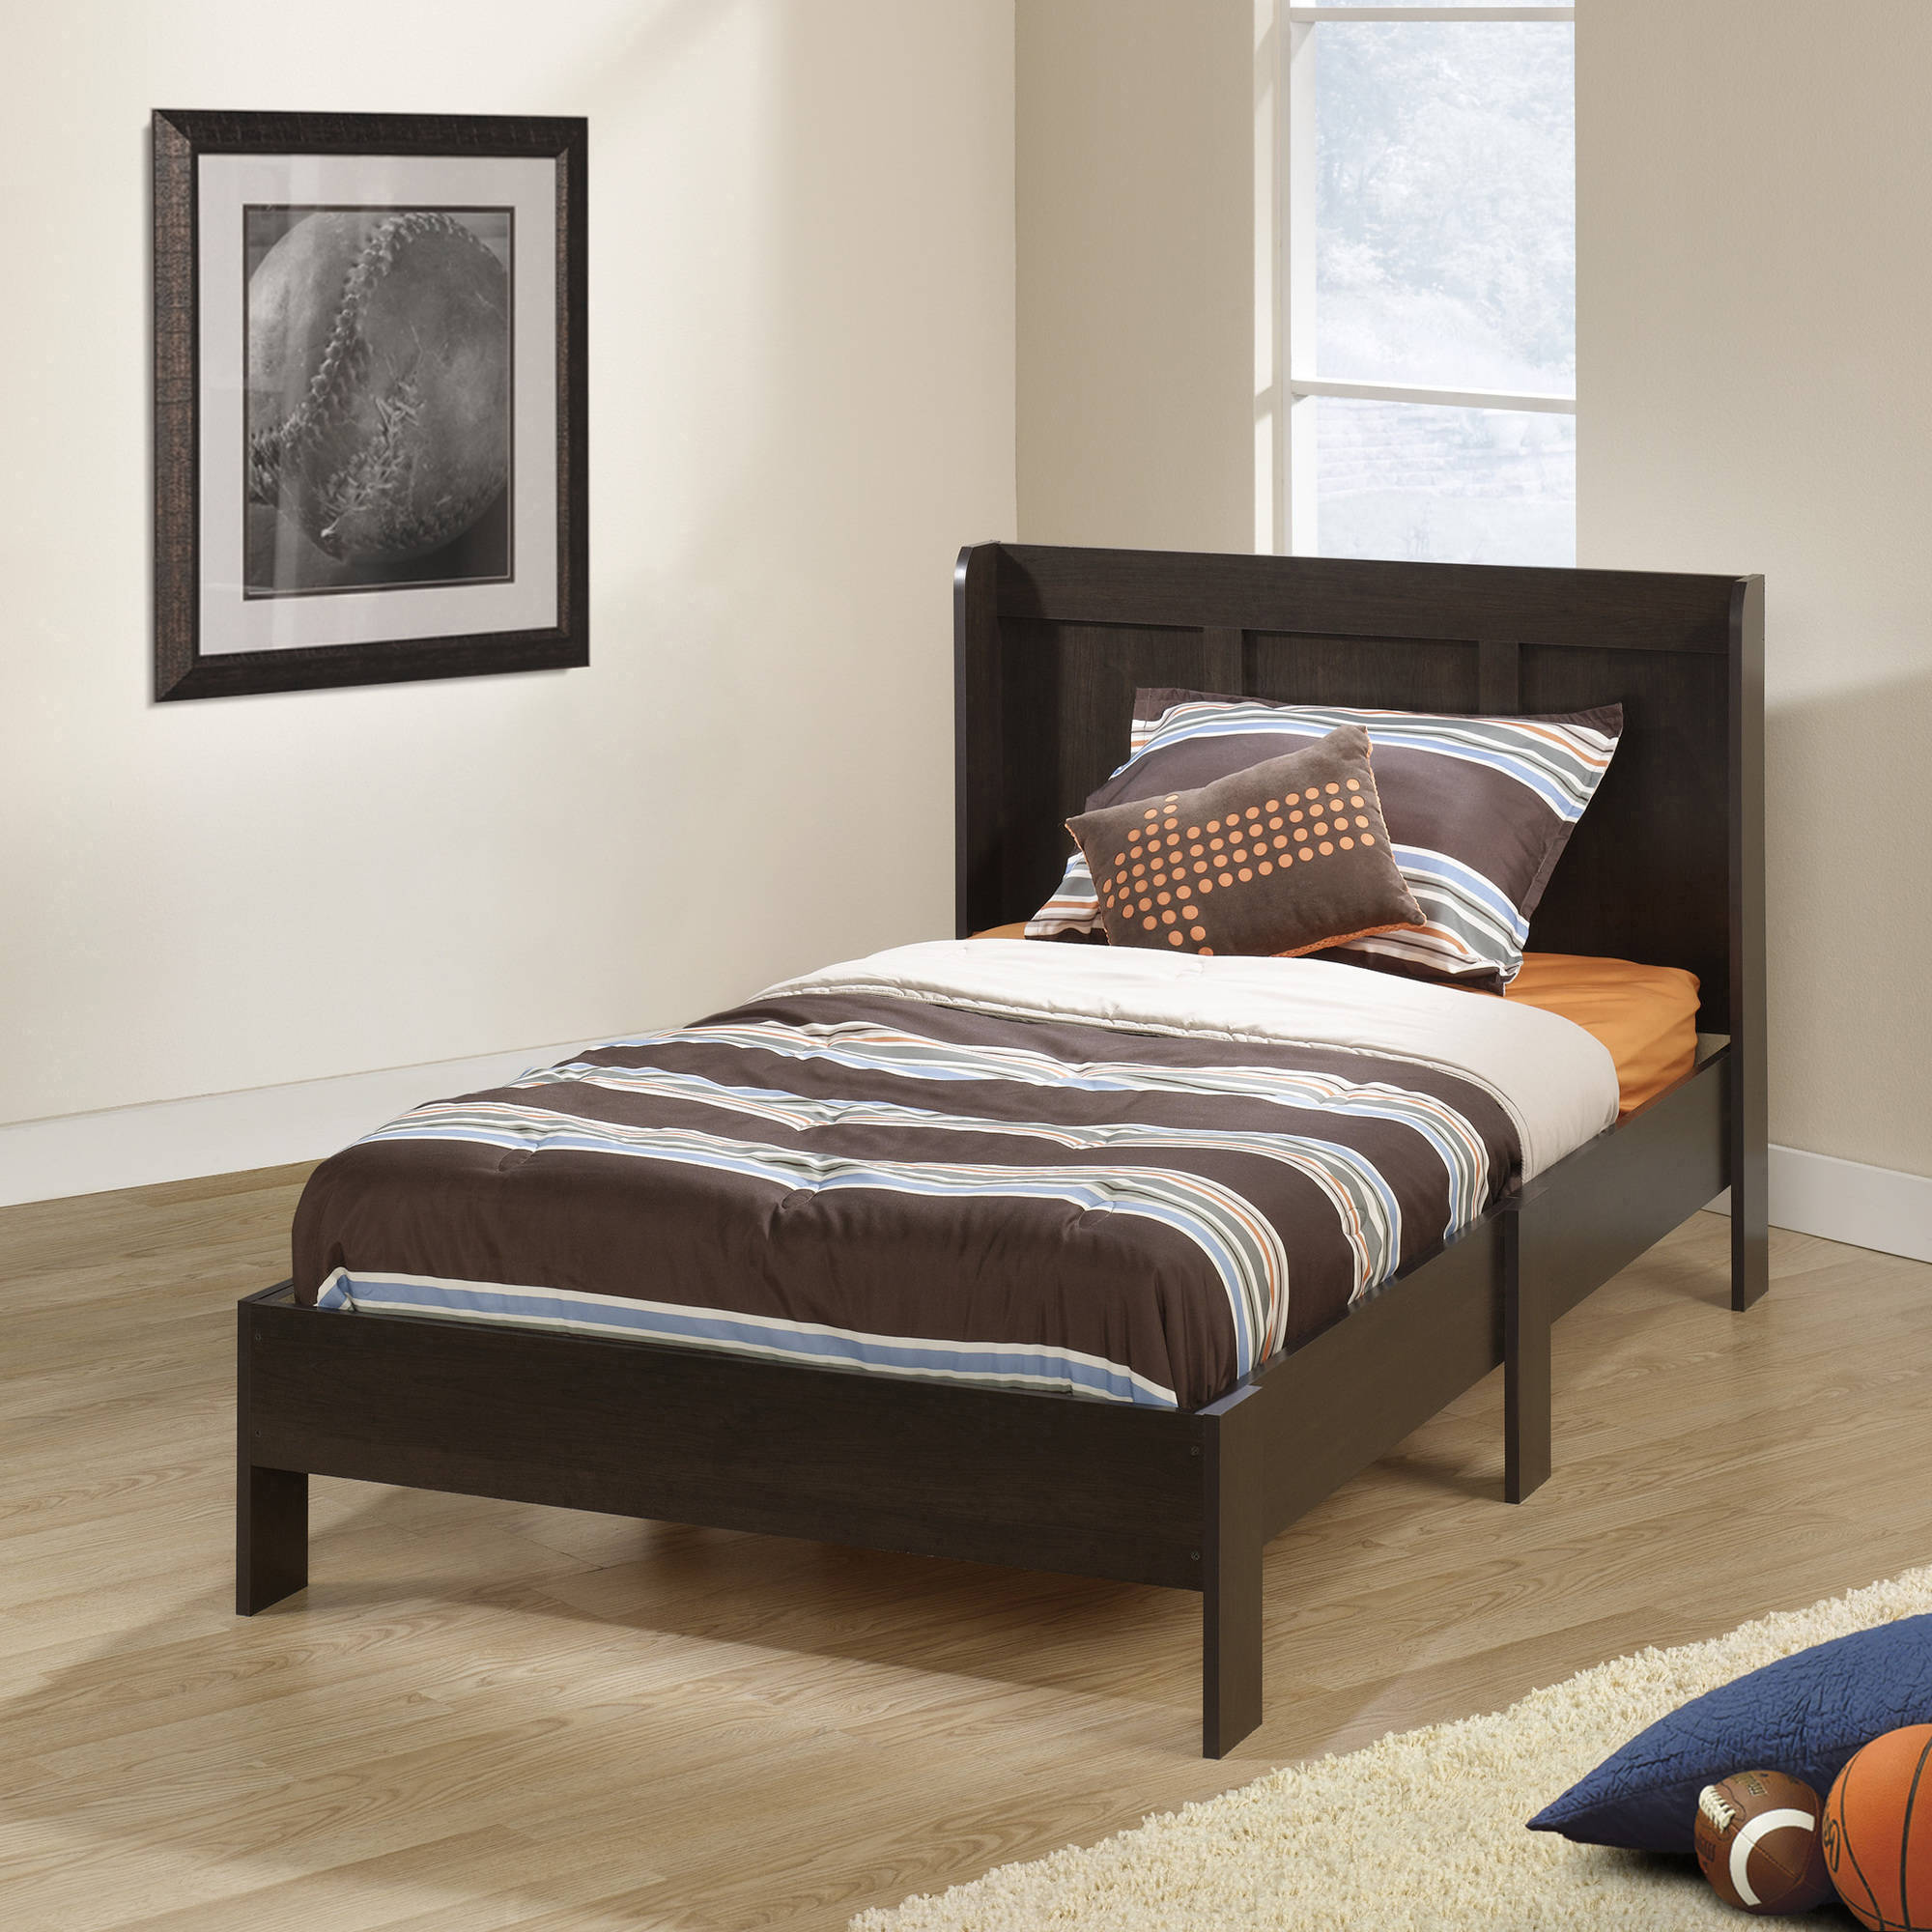 Sauder Parklane Twin Platform Bed and Headboard, Multiple Finishes